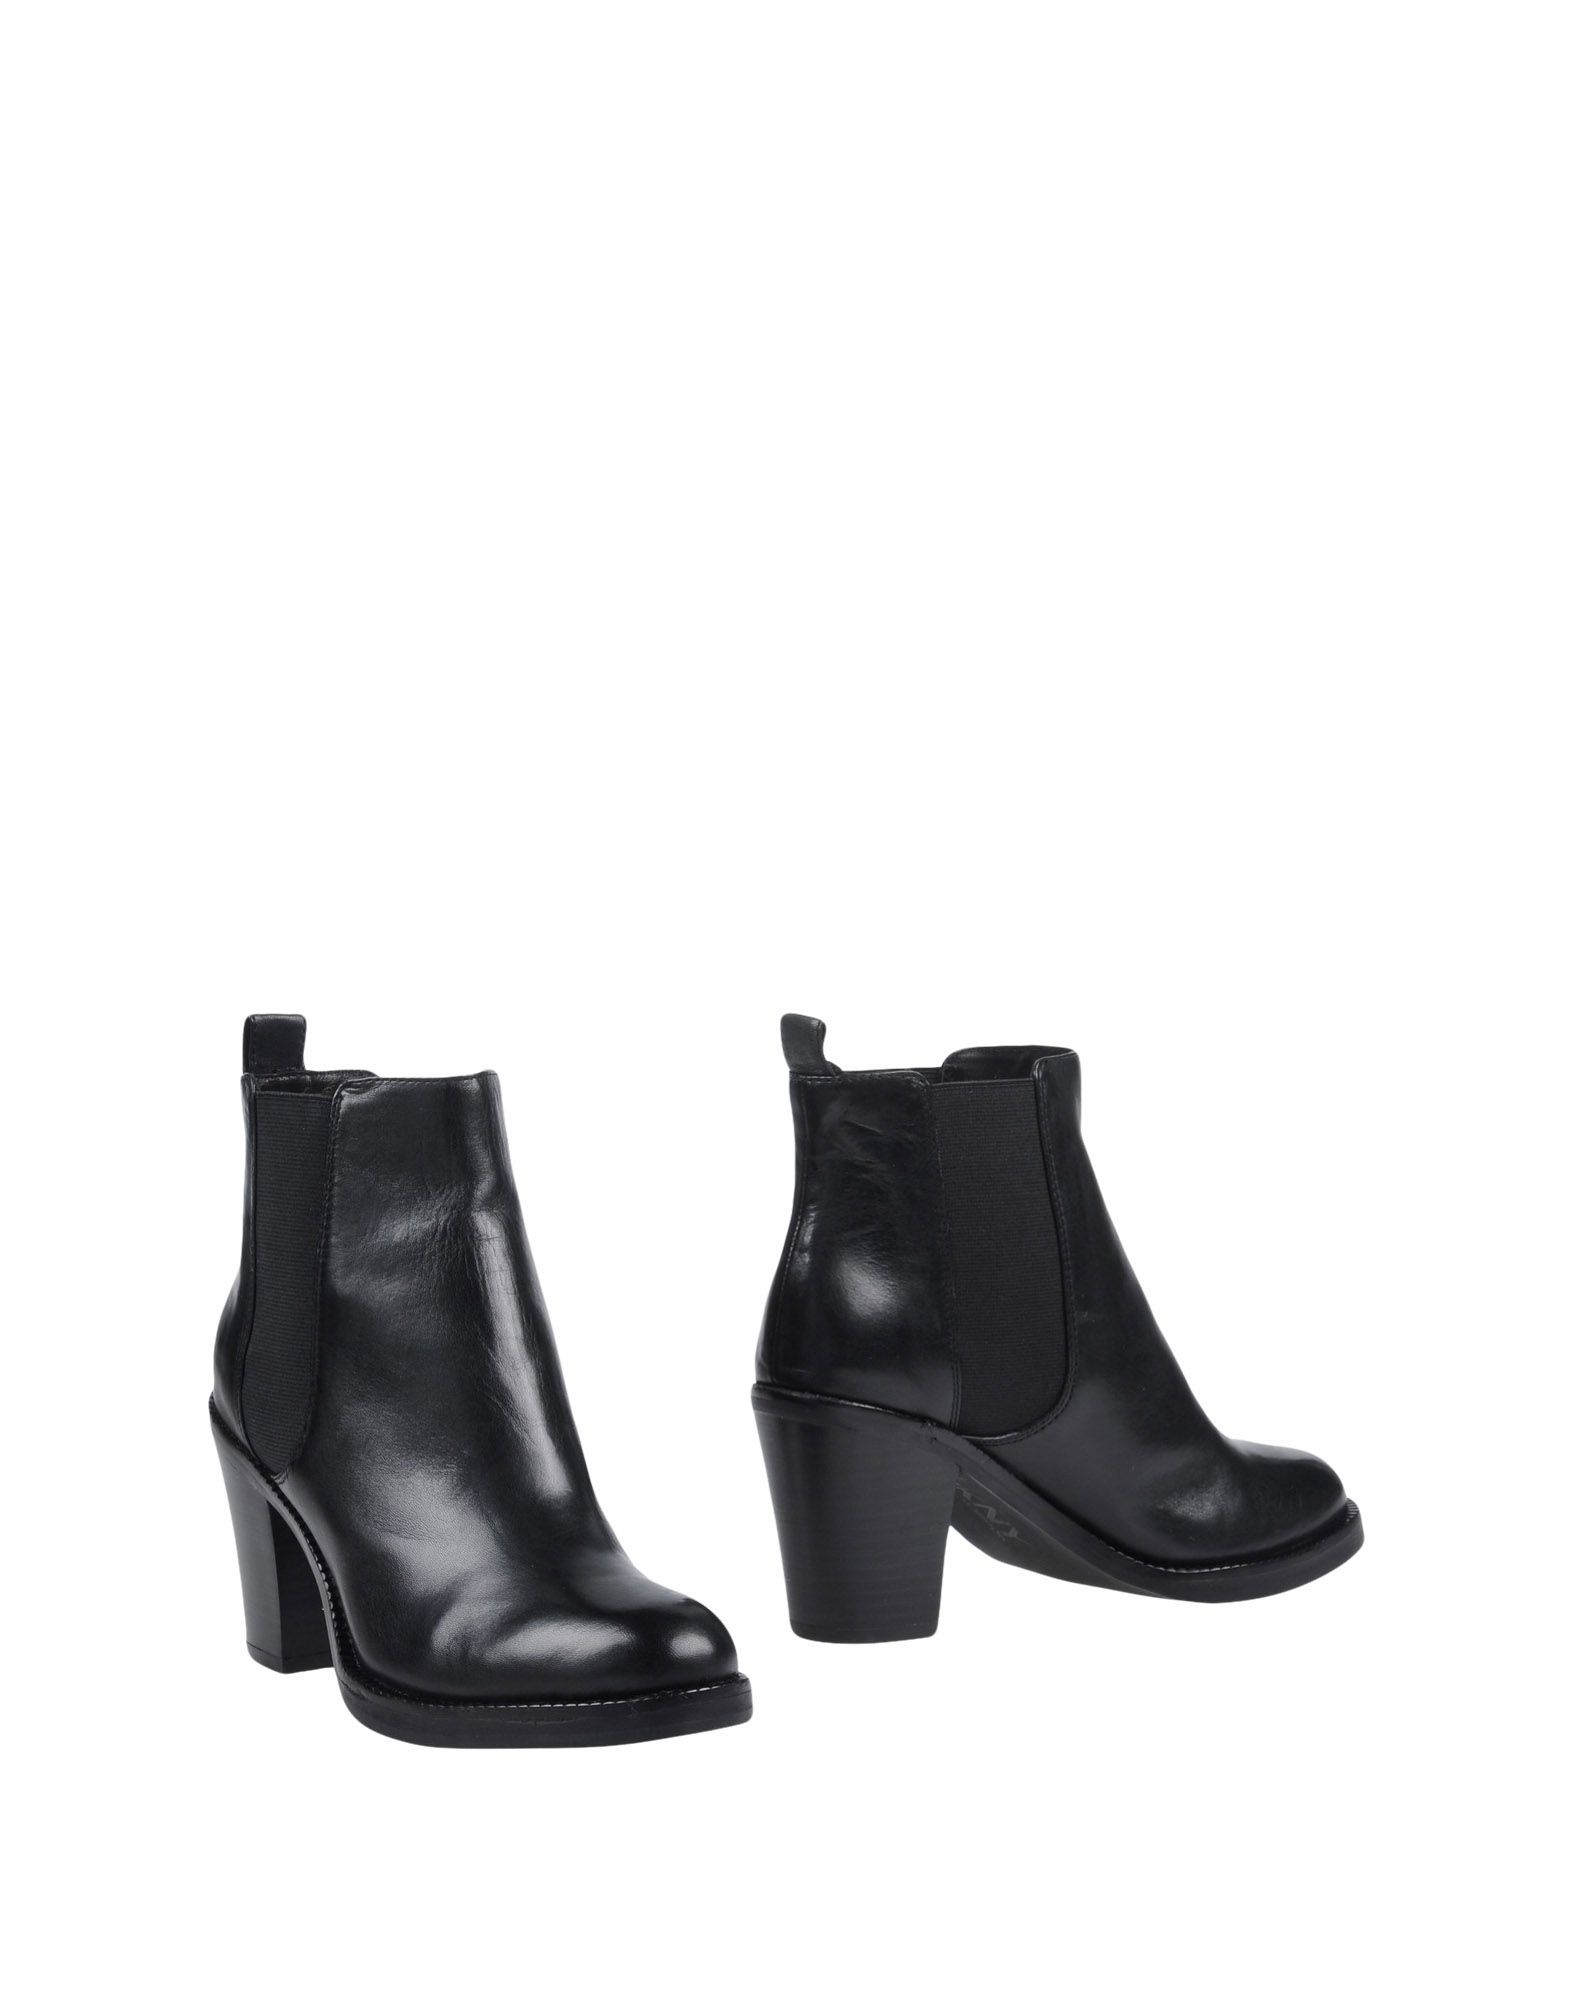 Chelsea Boots Dkny Donna - 11436678TI